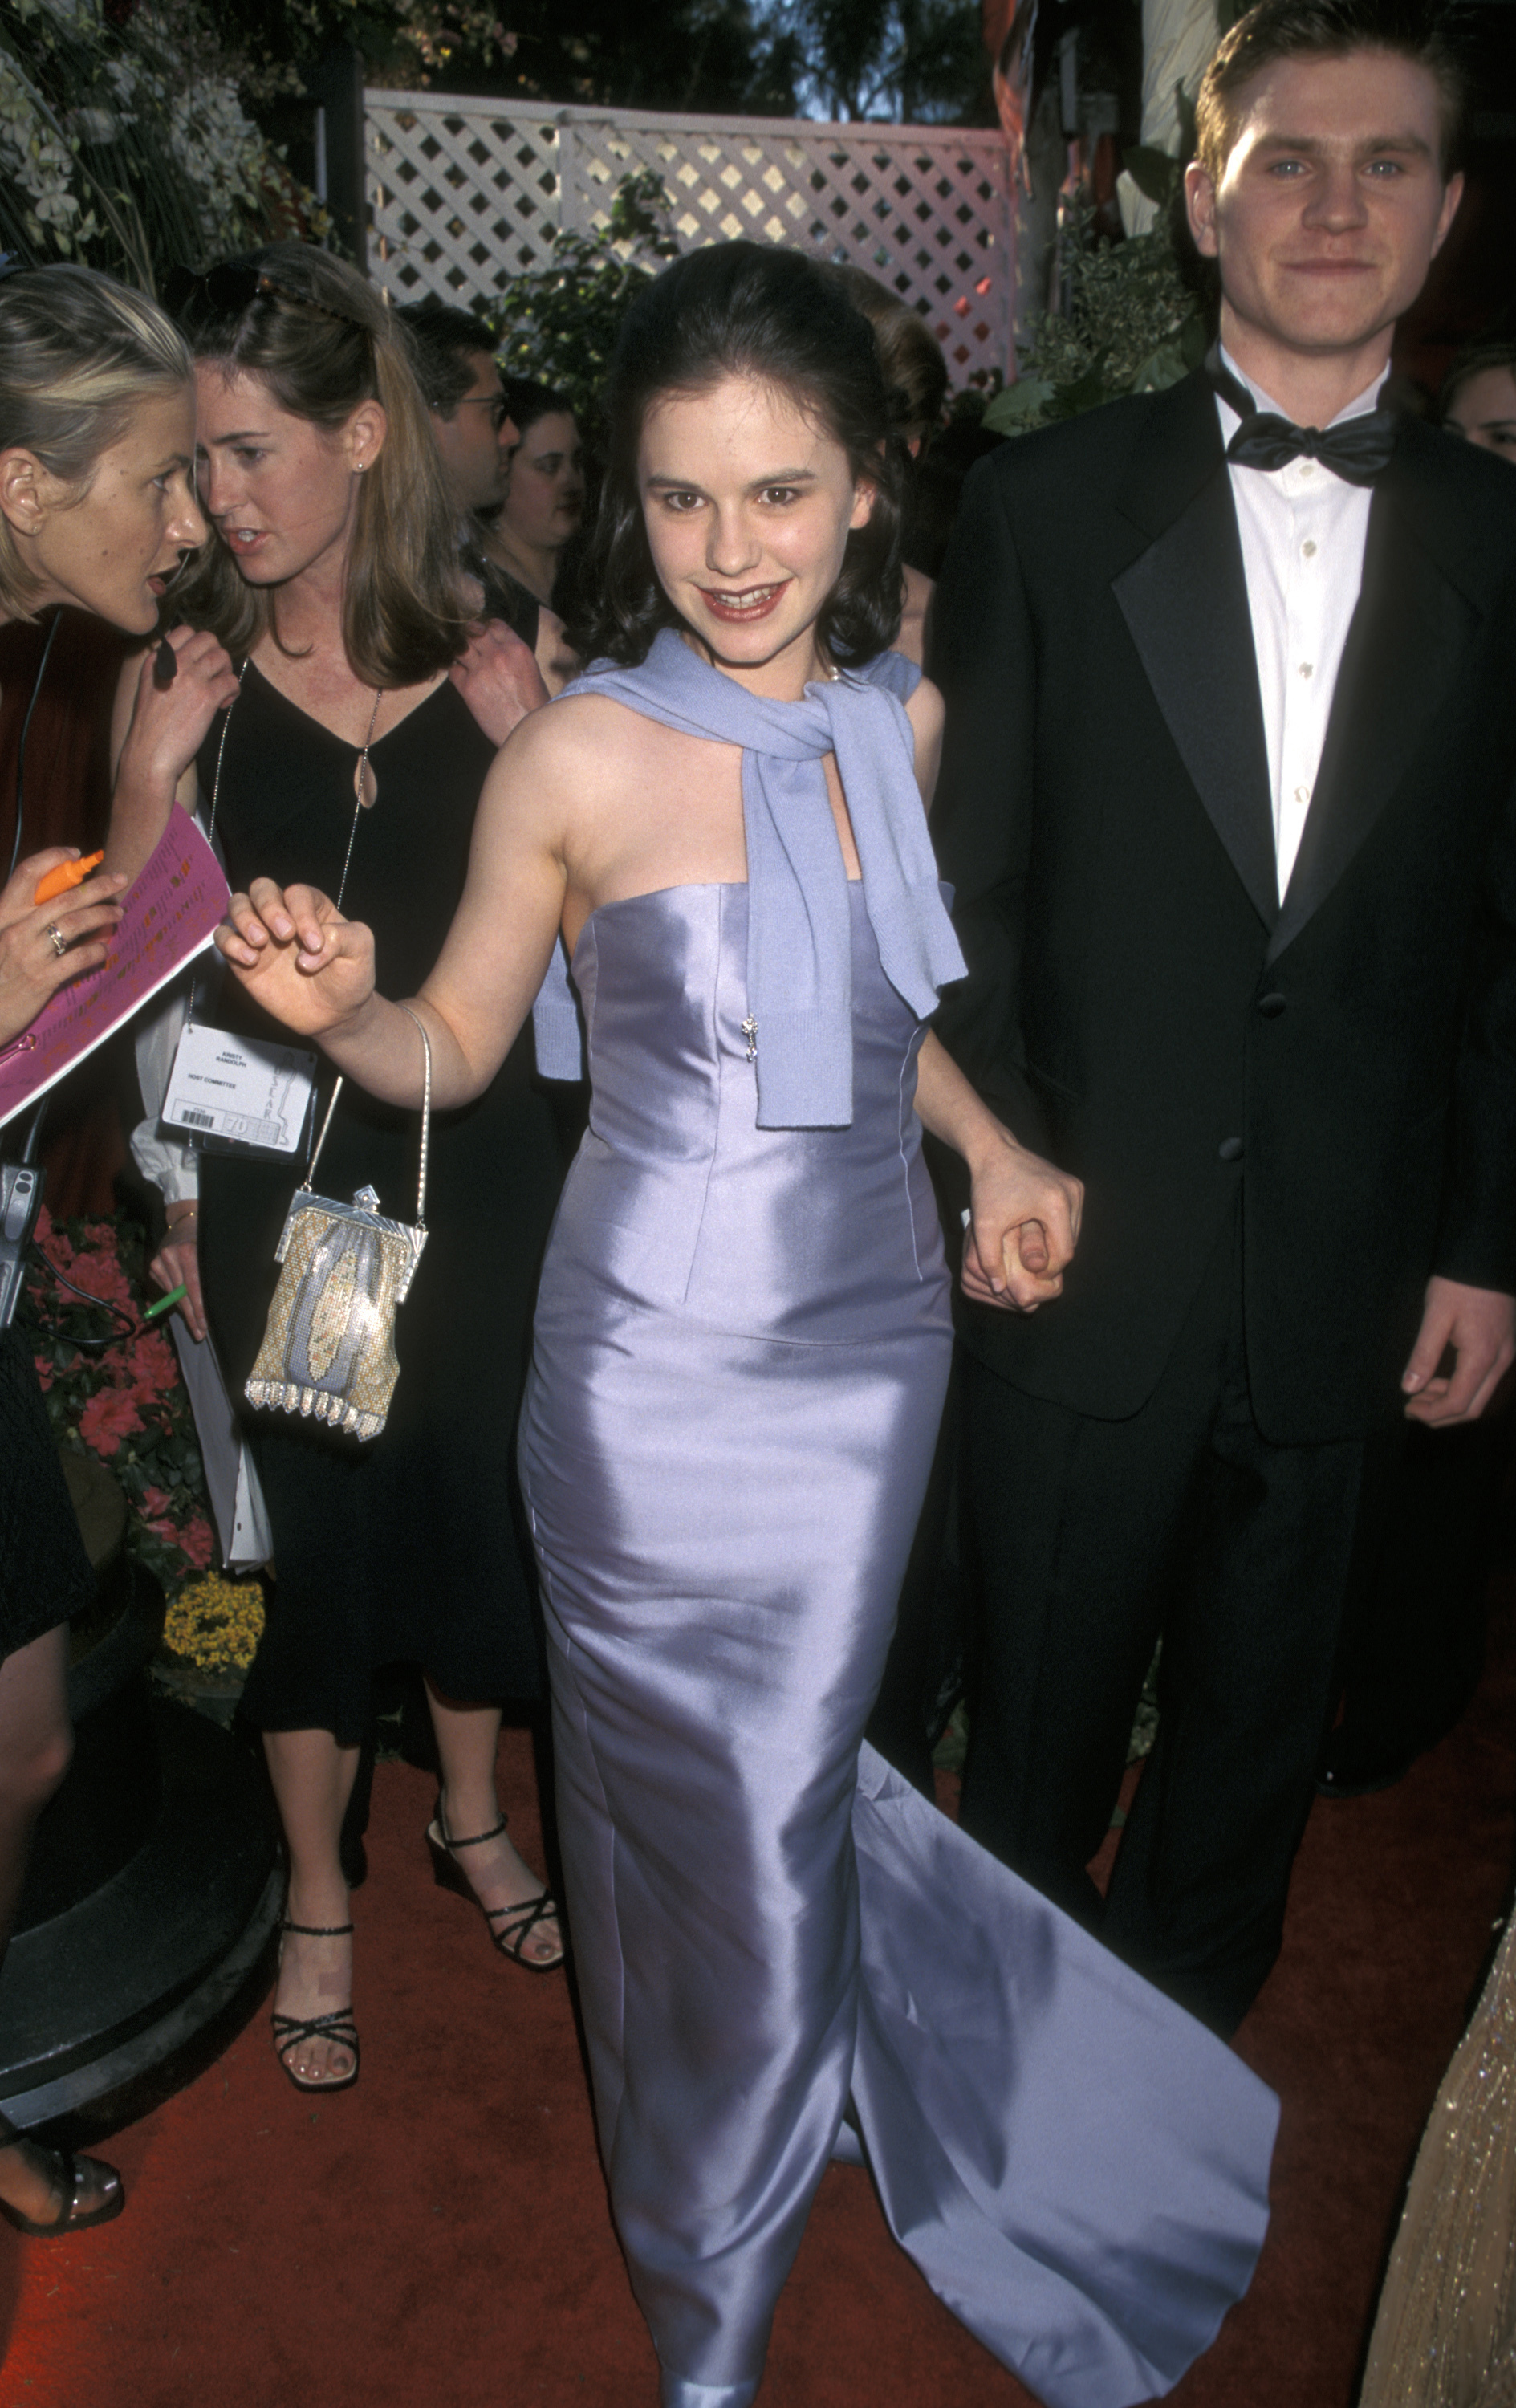 Anna Paquin and brother at the 70th annual Academy Awards in Los Angeles on March 23, 1998.